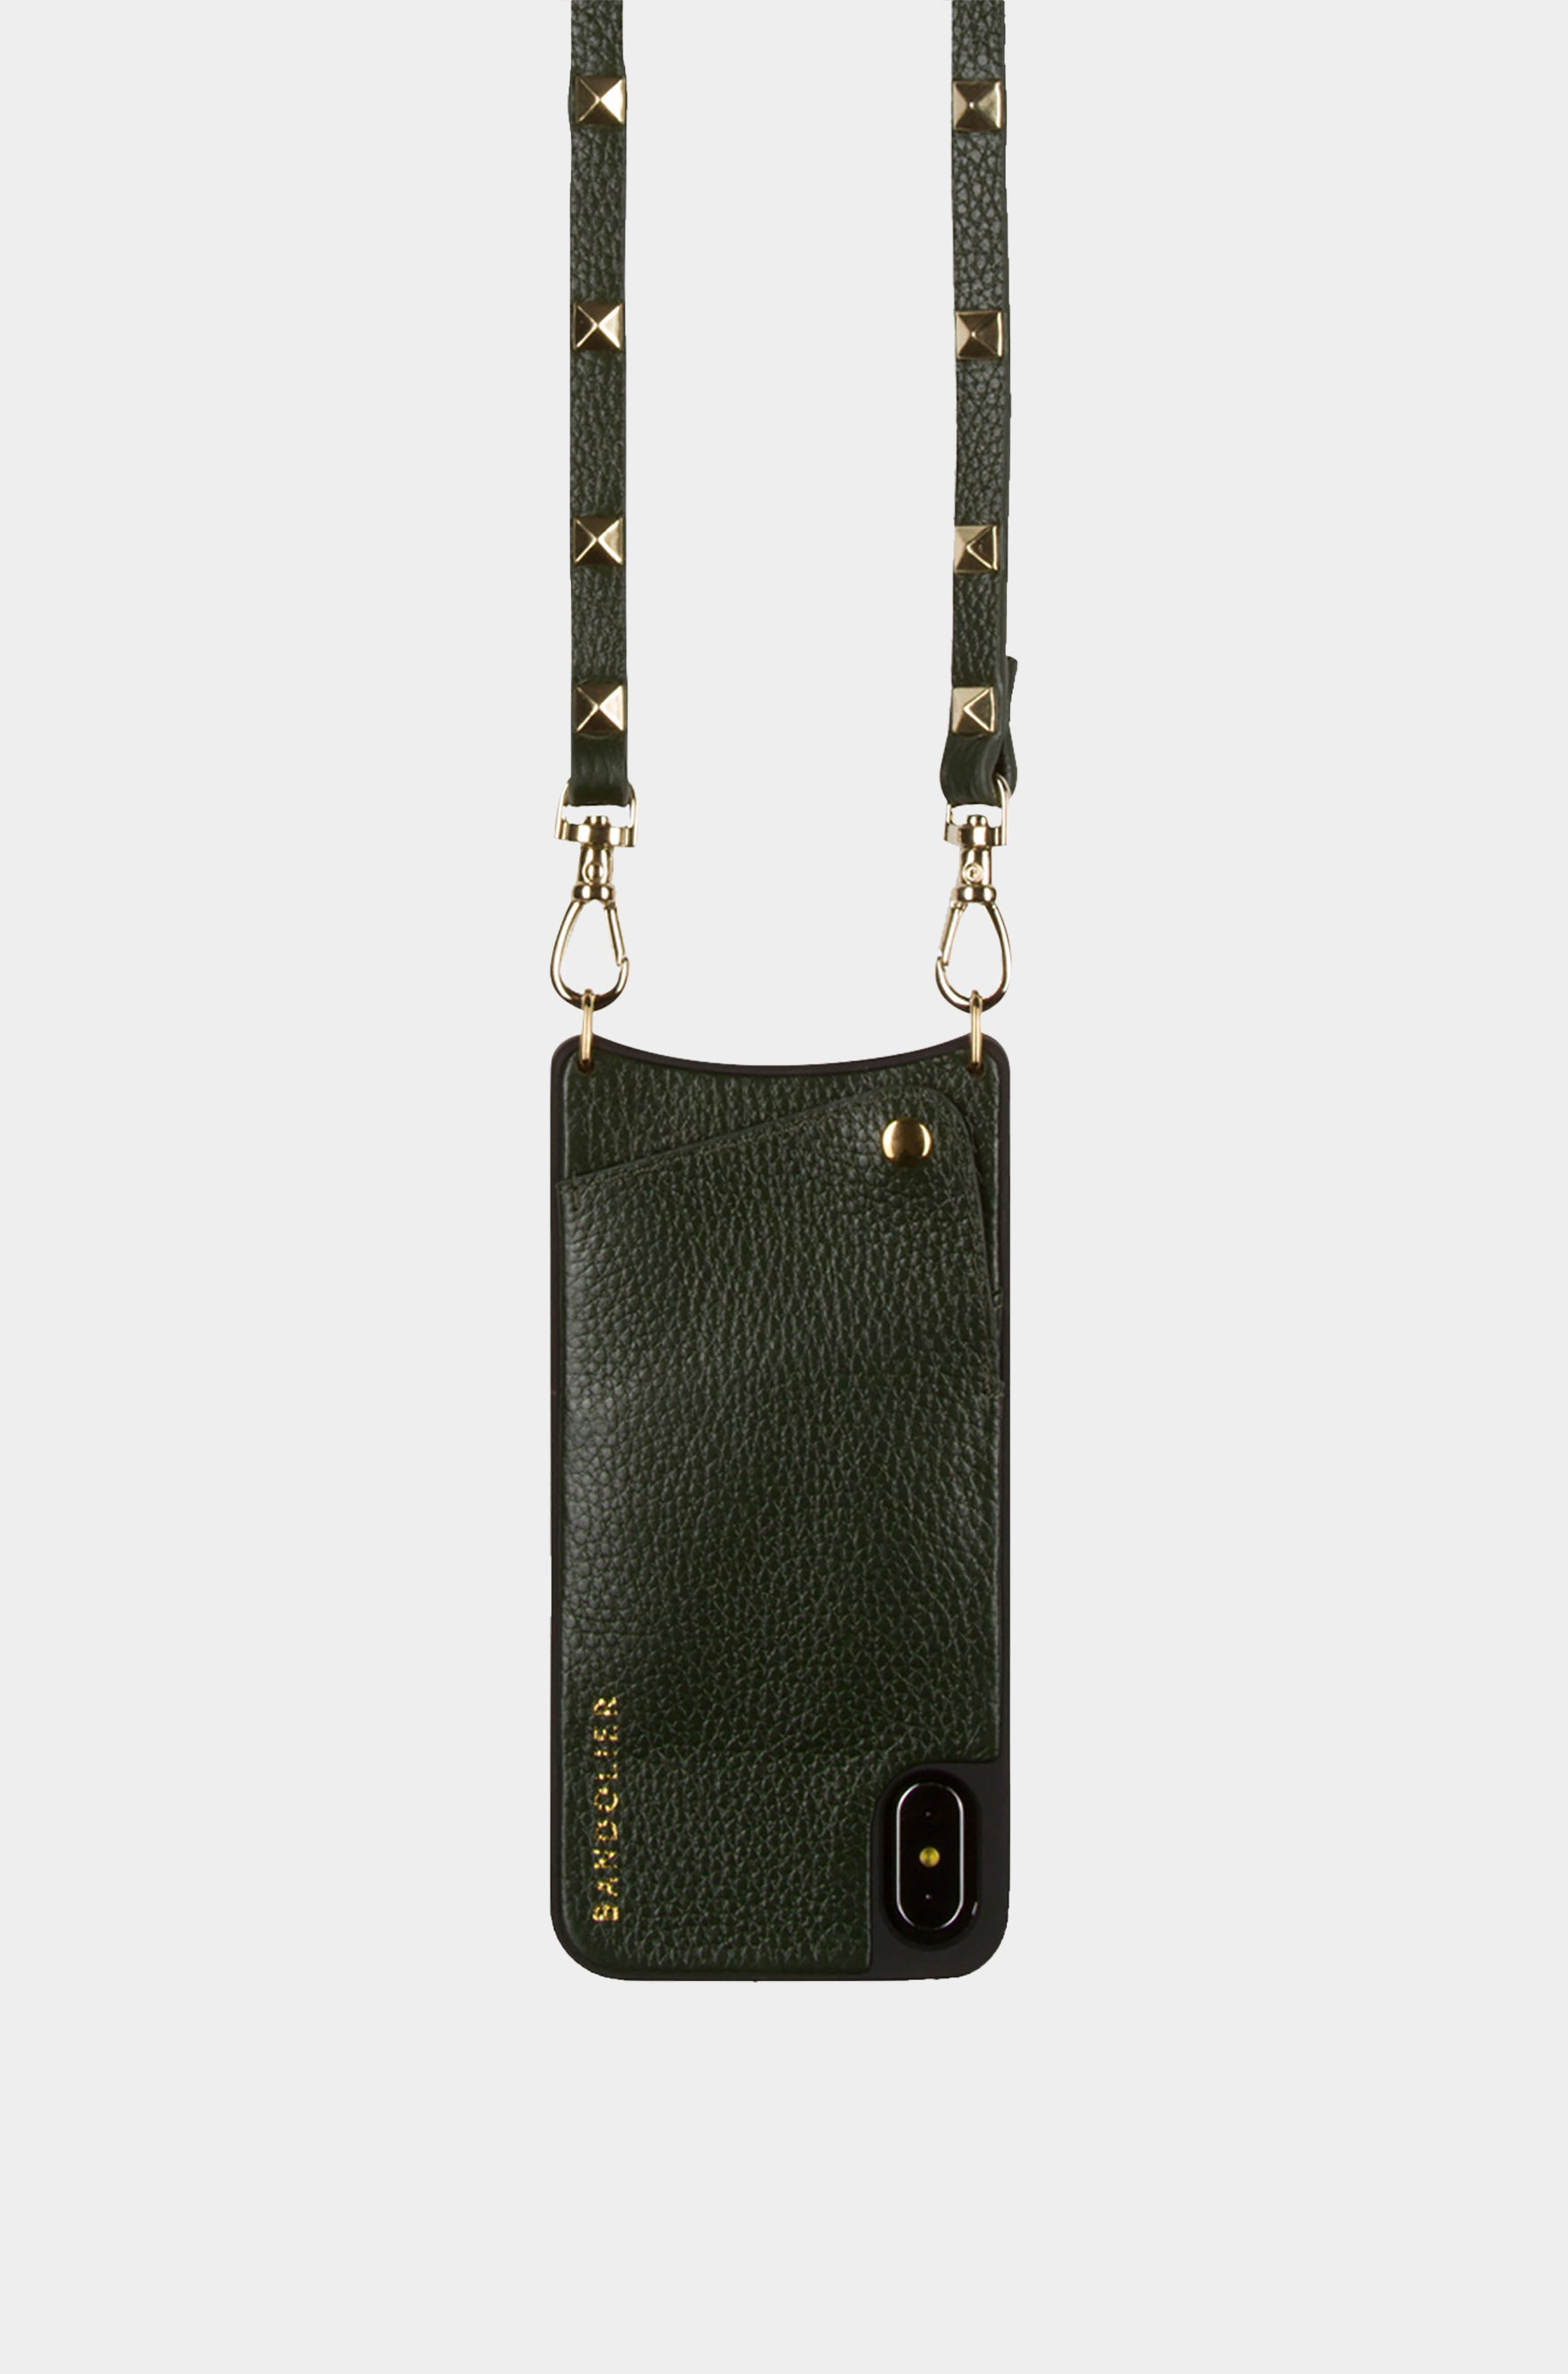 Bandolier Leather Crossbody Phone Case for iPhone - Sarah Evergreen/Gold